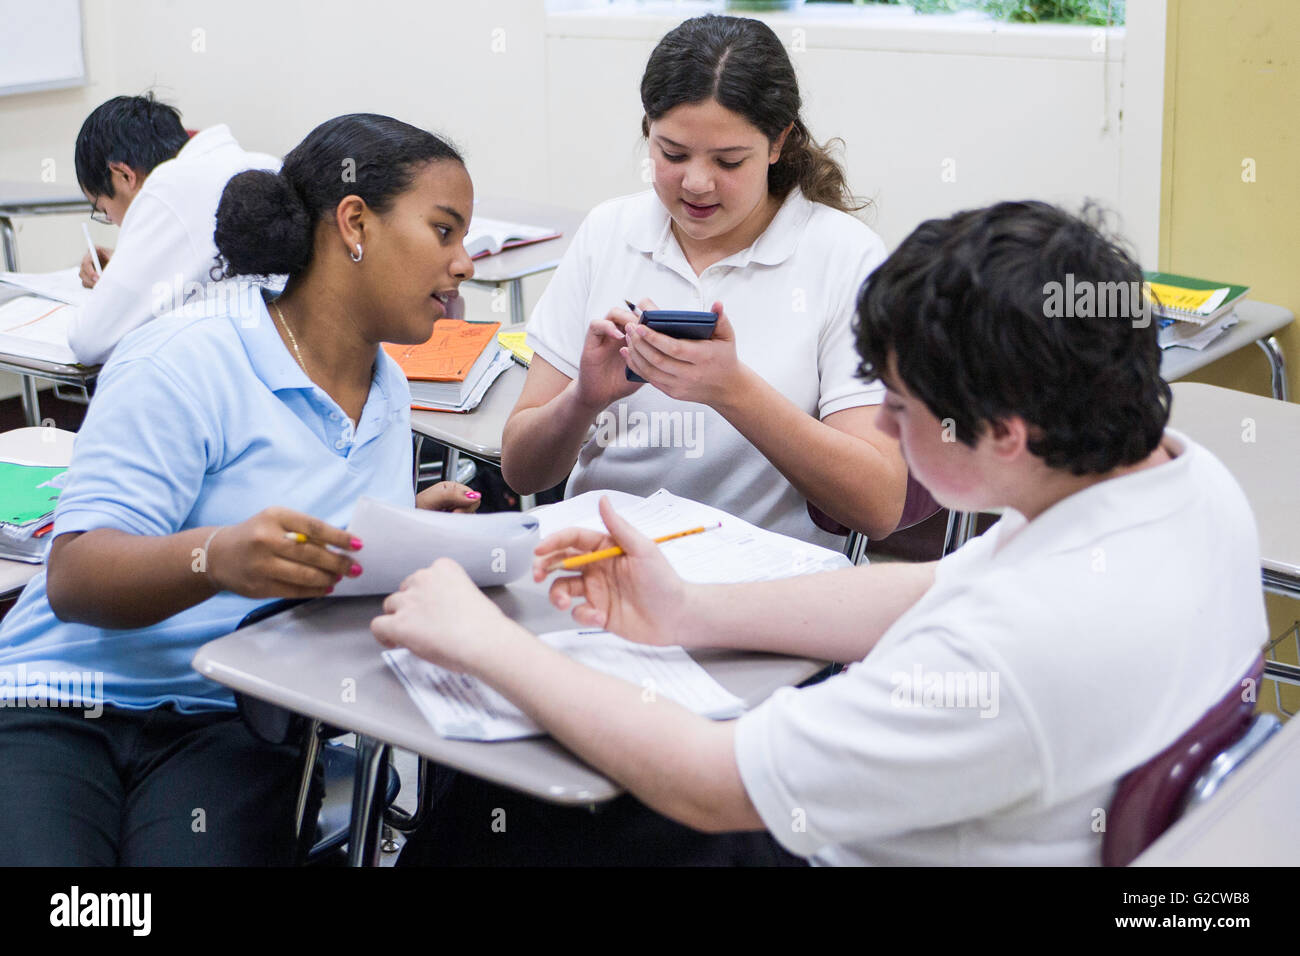 Three high school students studying together - Stock Image